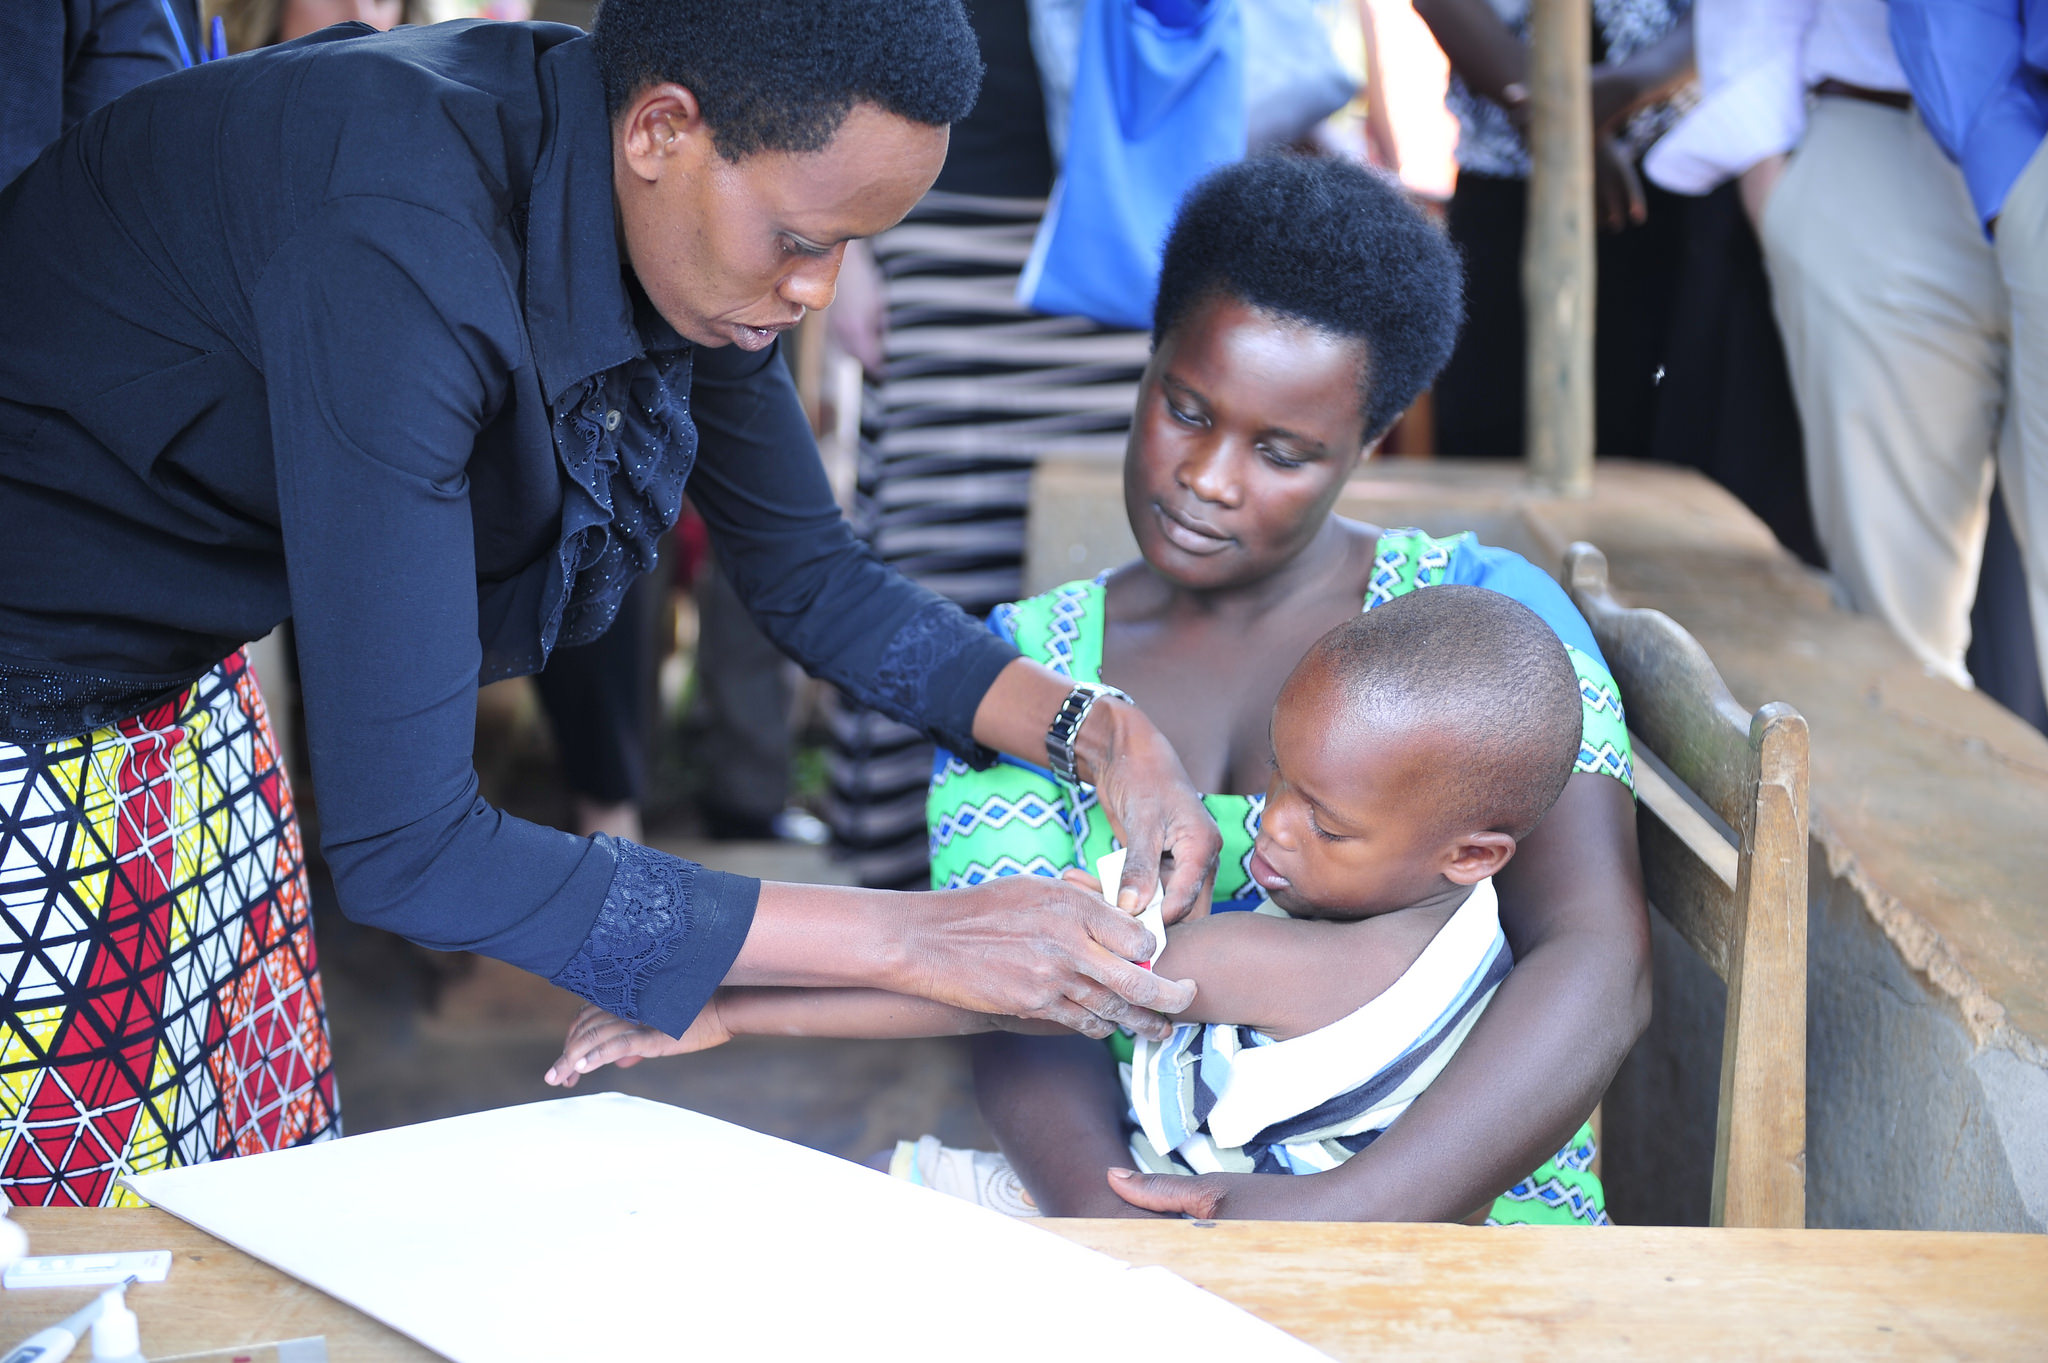 Health care worker assisting a child